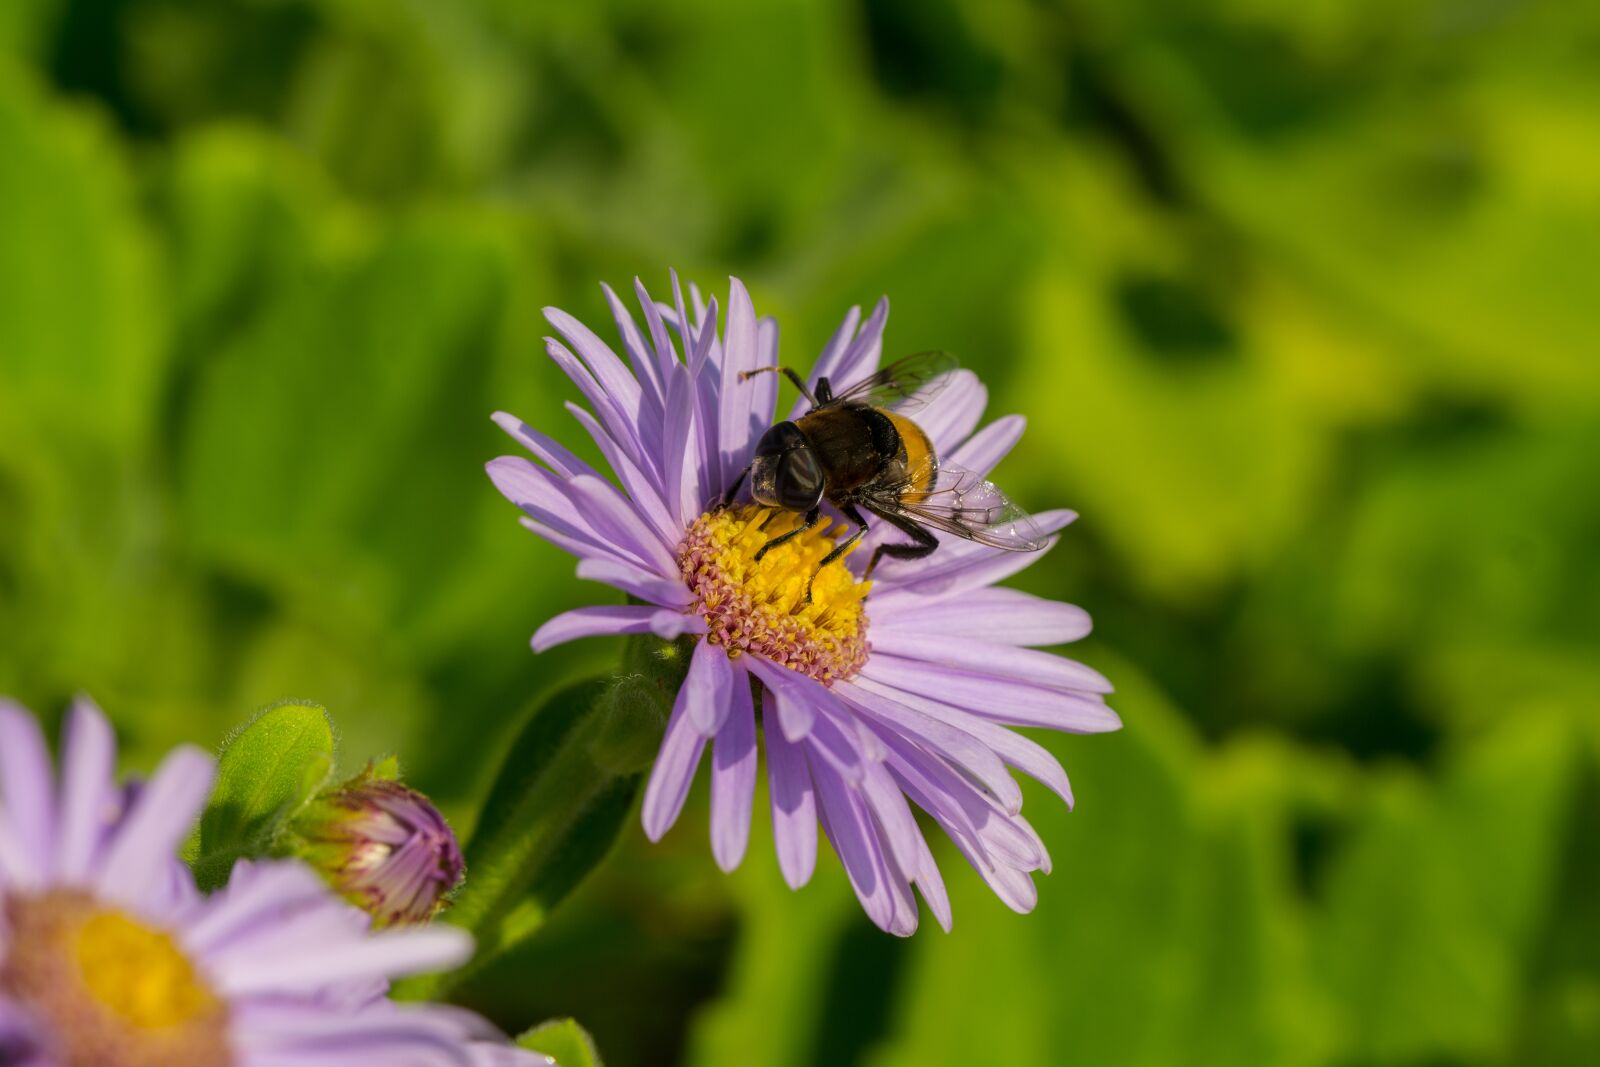 """Sony a6000 sample photo. """"Hoverfly, flowers, insects"""" photography"""